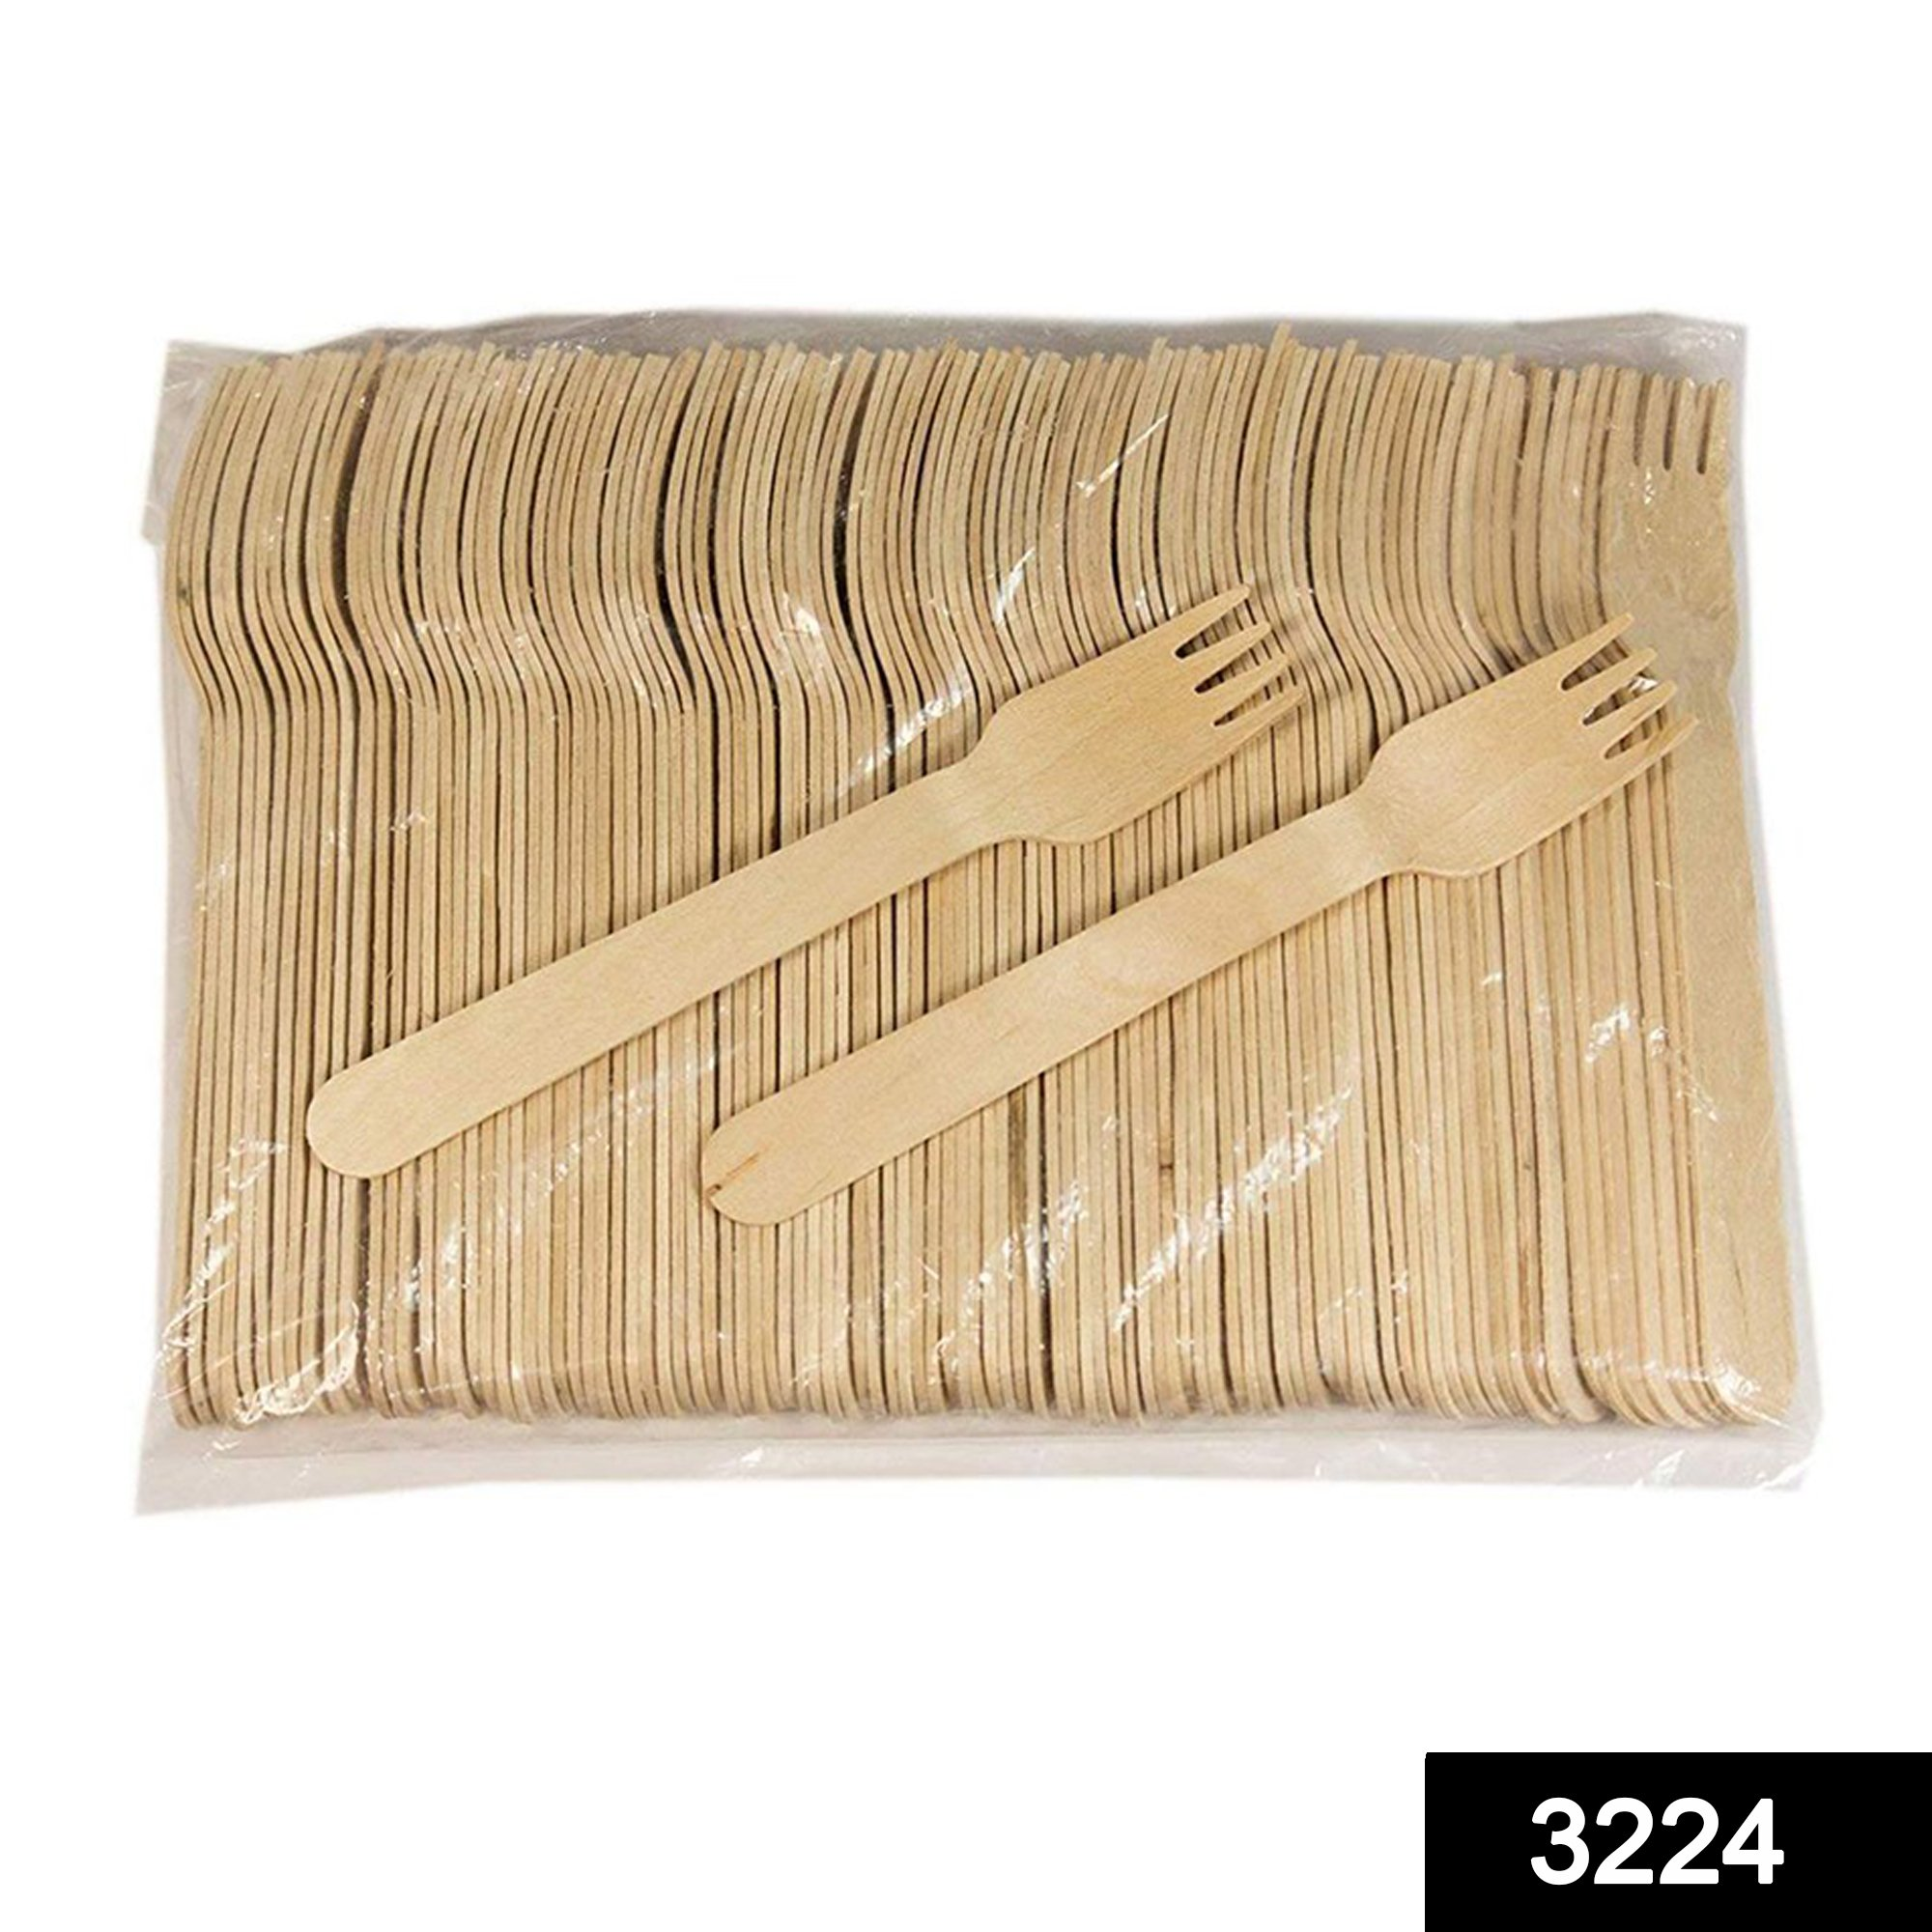 3224 Disposable Eco-friendly Wooden Fork (Pack of 100) -